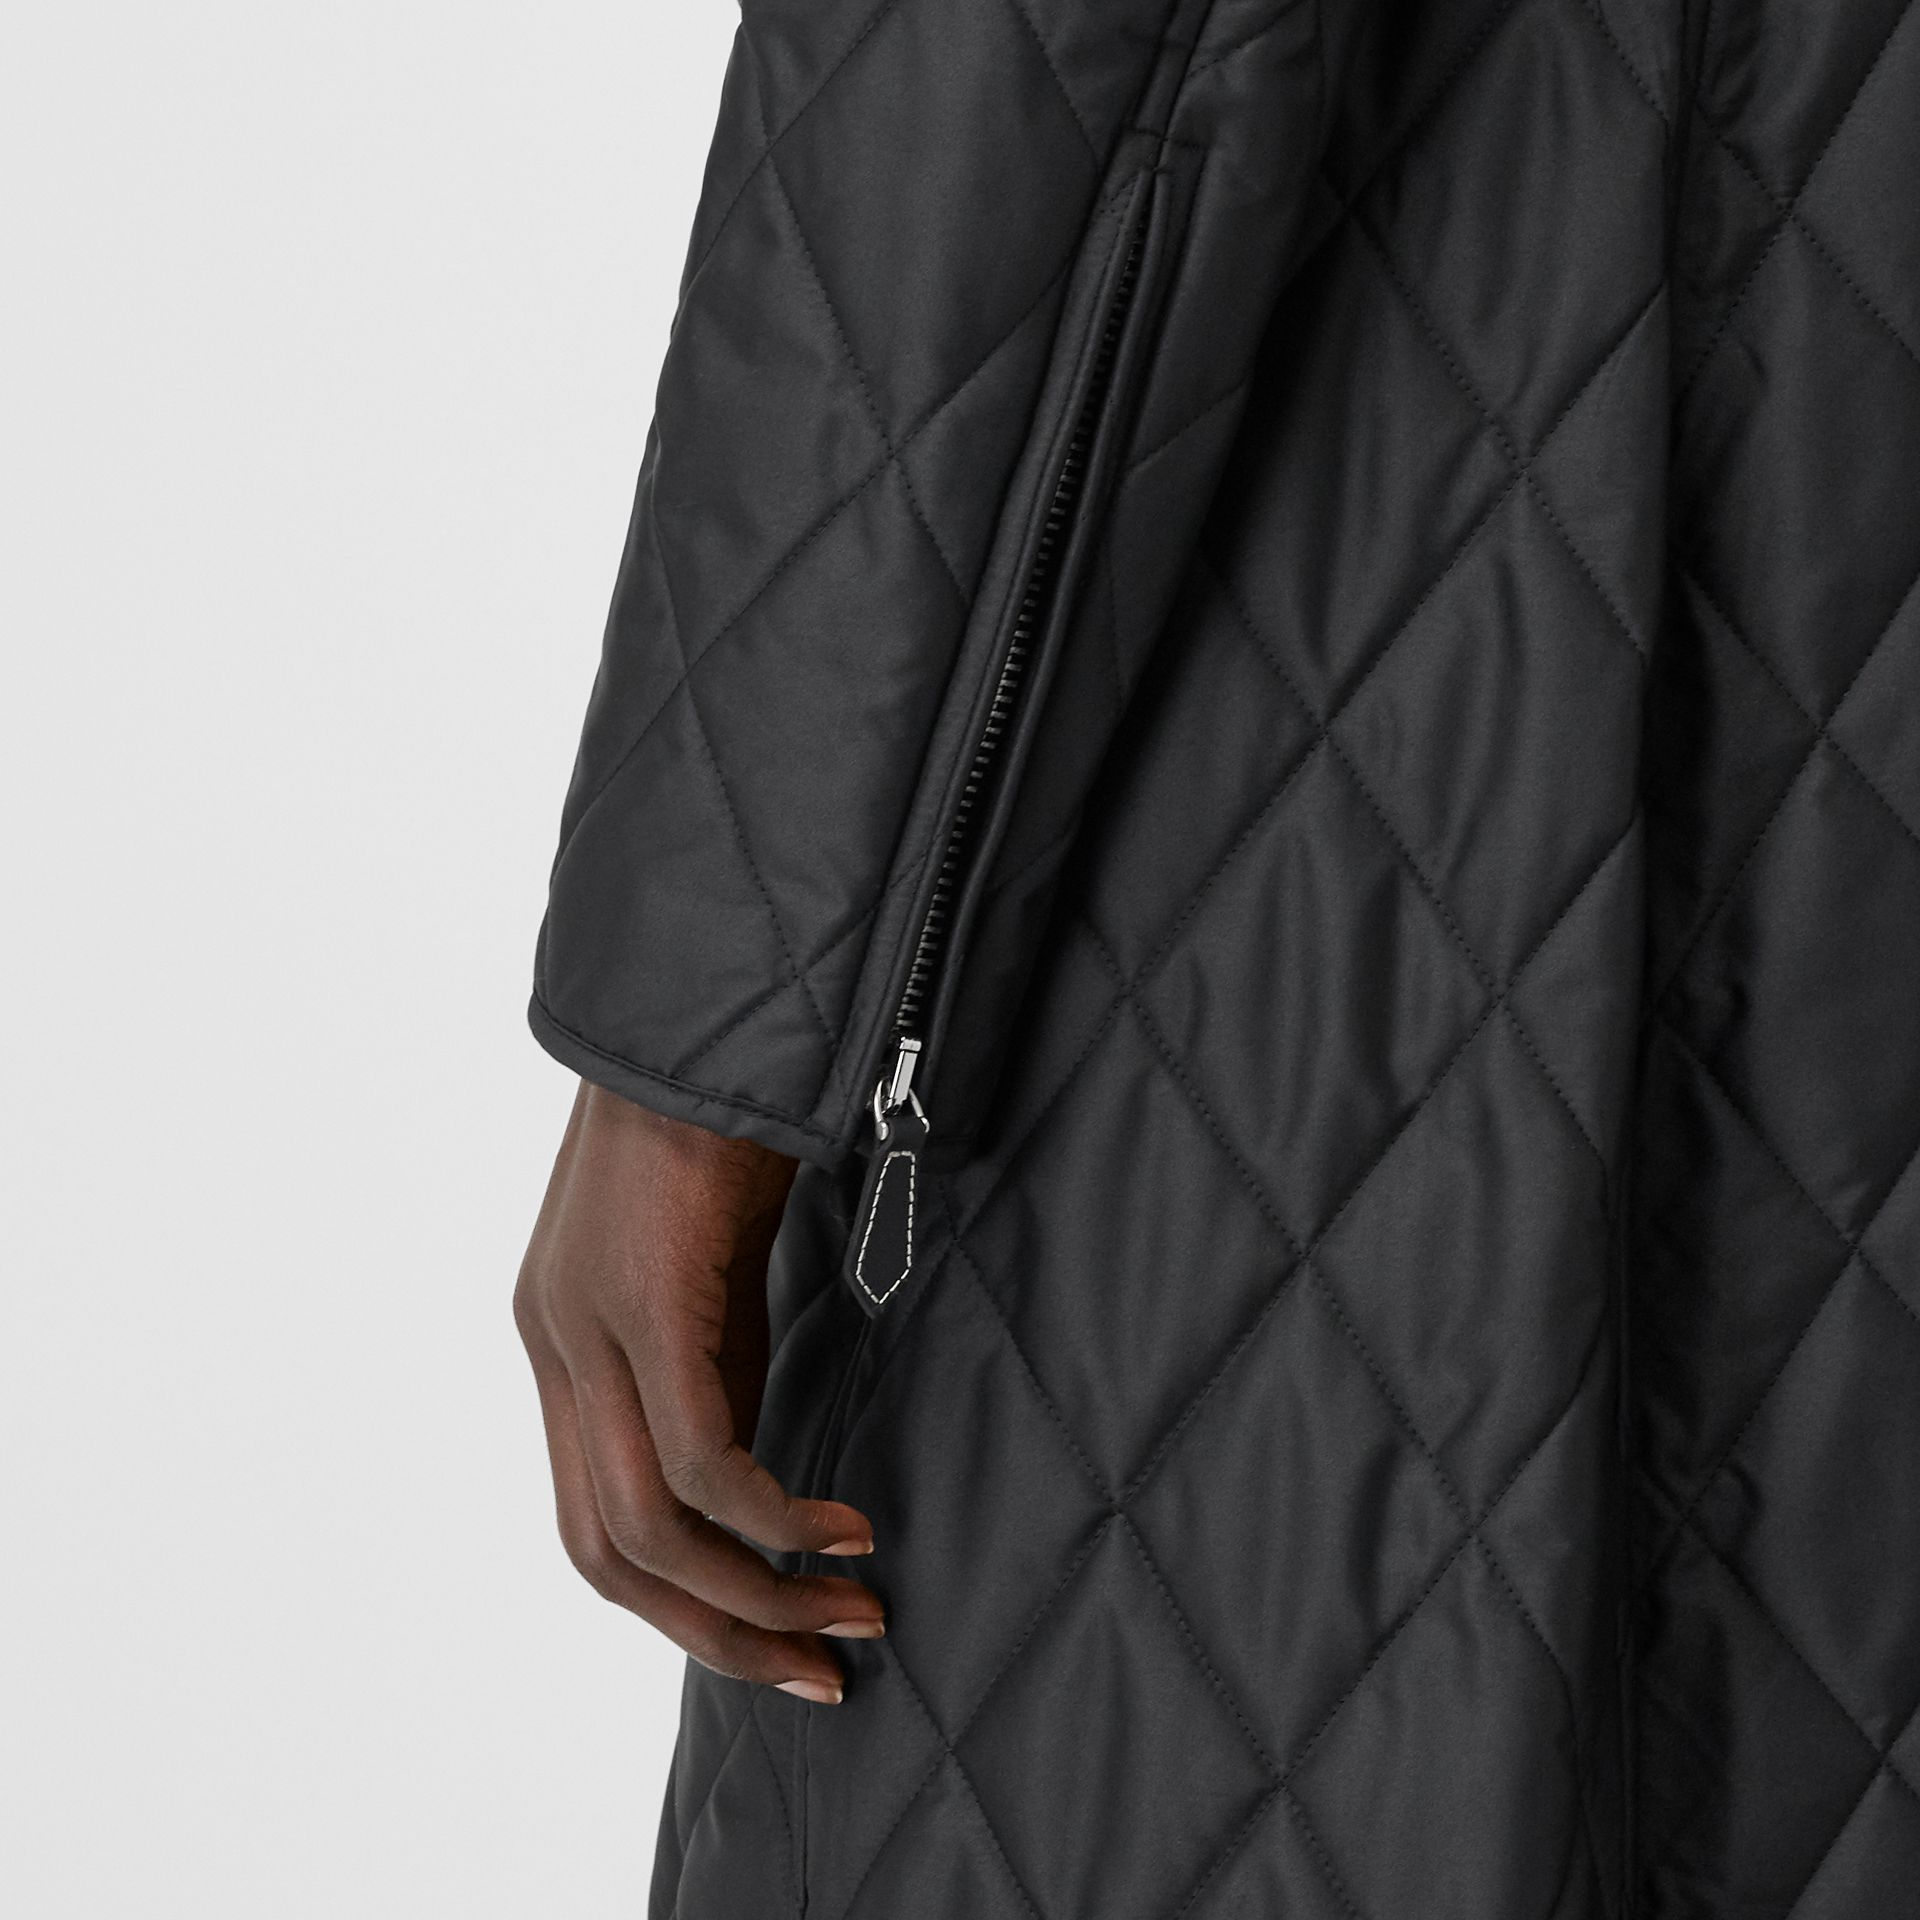 Monogram Motif Quilted Riding Coat in Black - Women | Burberry - gallery image 6